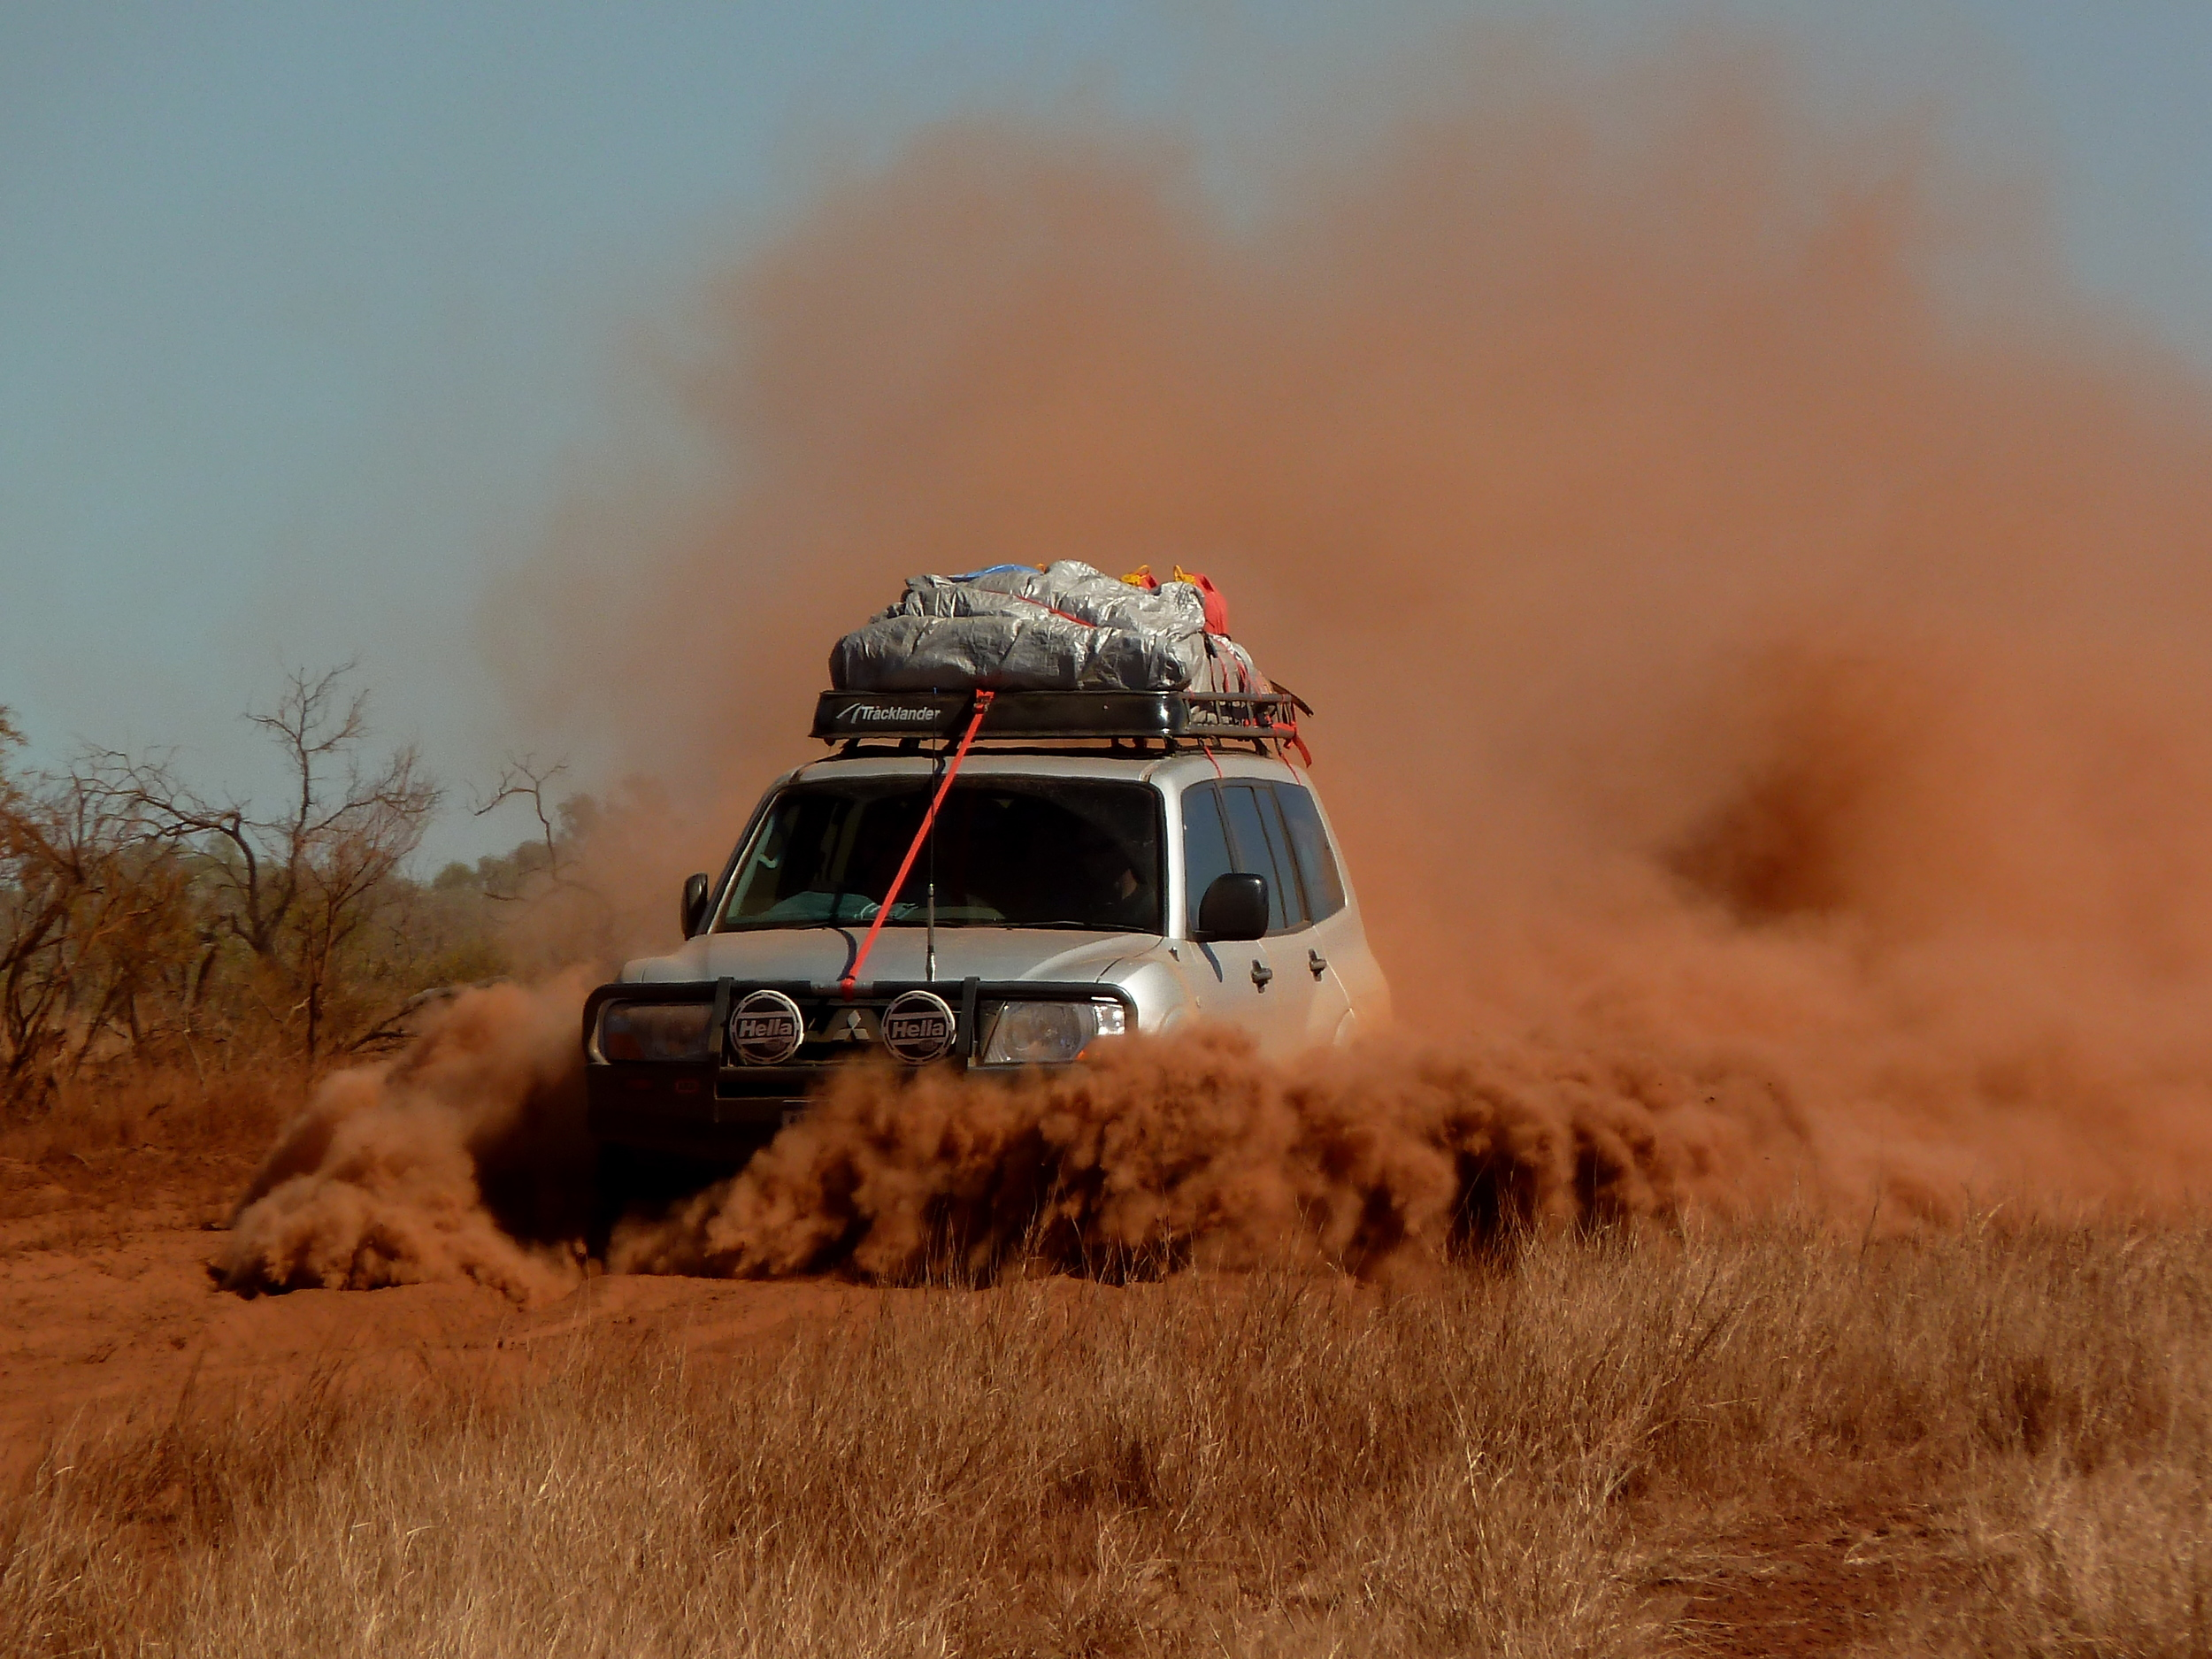 Parting shot... us driving through bull dust. Some of my things are still stained from that red dust! Photo credit: Gerzy